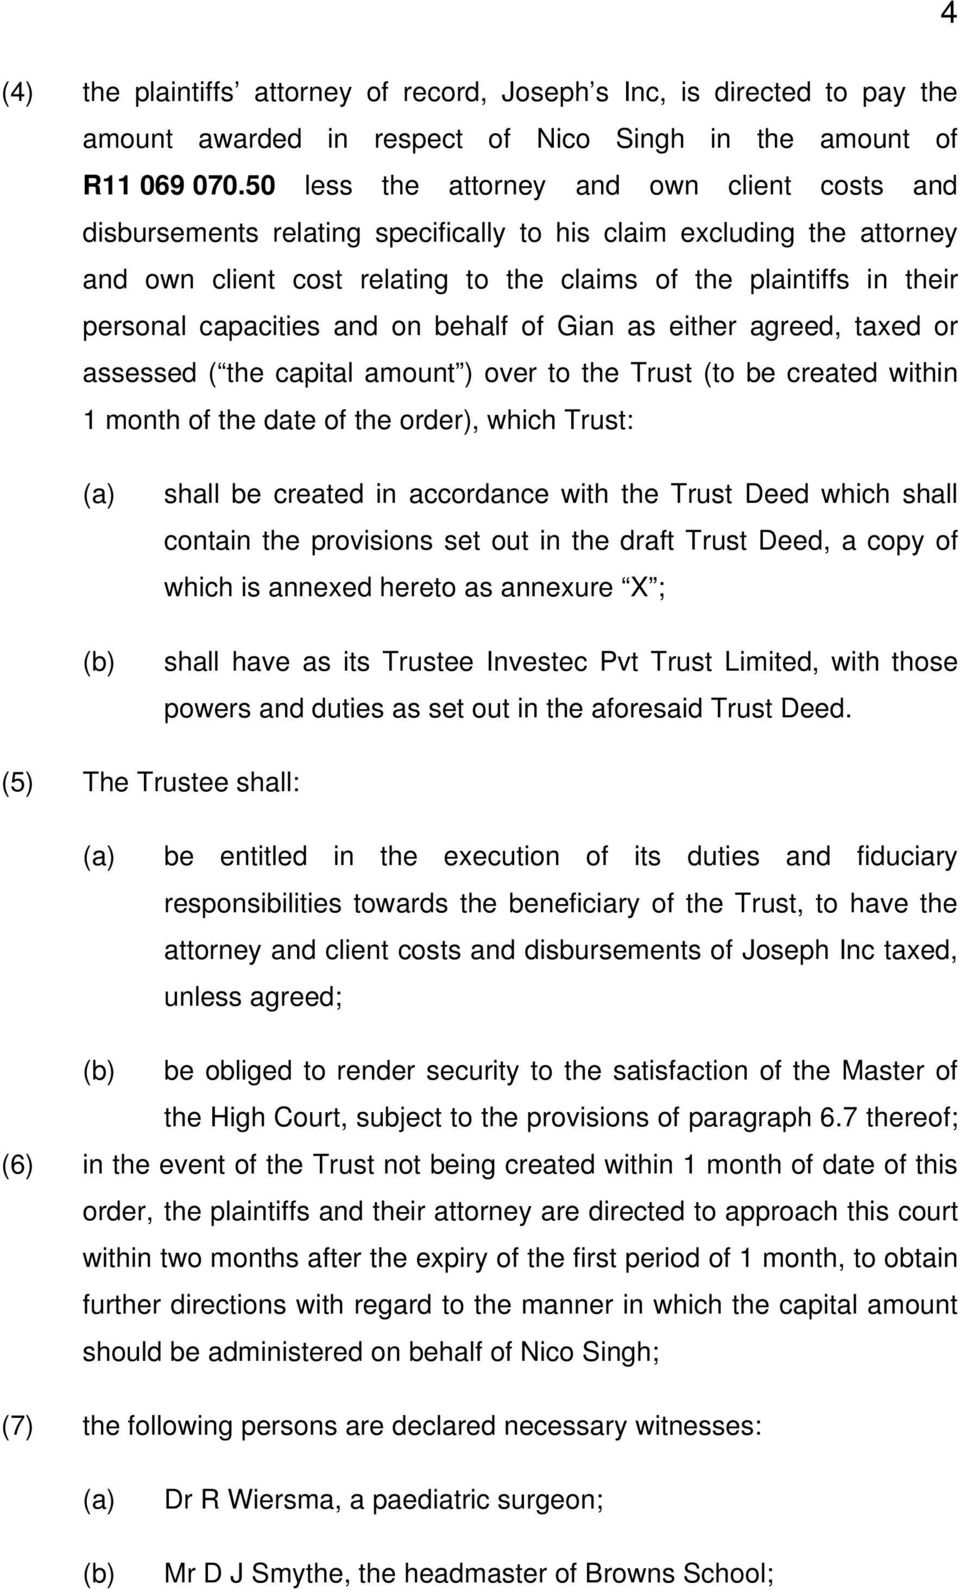 capacities and on behalf of Gian as either agreed, taxed or assessed ( the capital amount ) over to the Trust (to be created within 1 month of the date of the order), which Trust: (a) (b) shall be